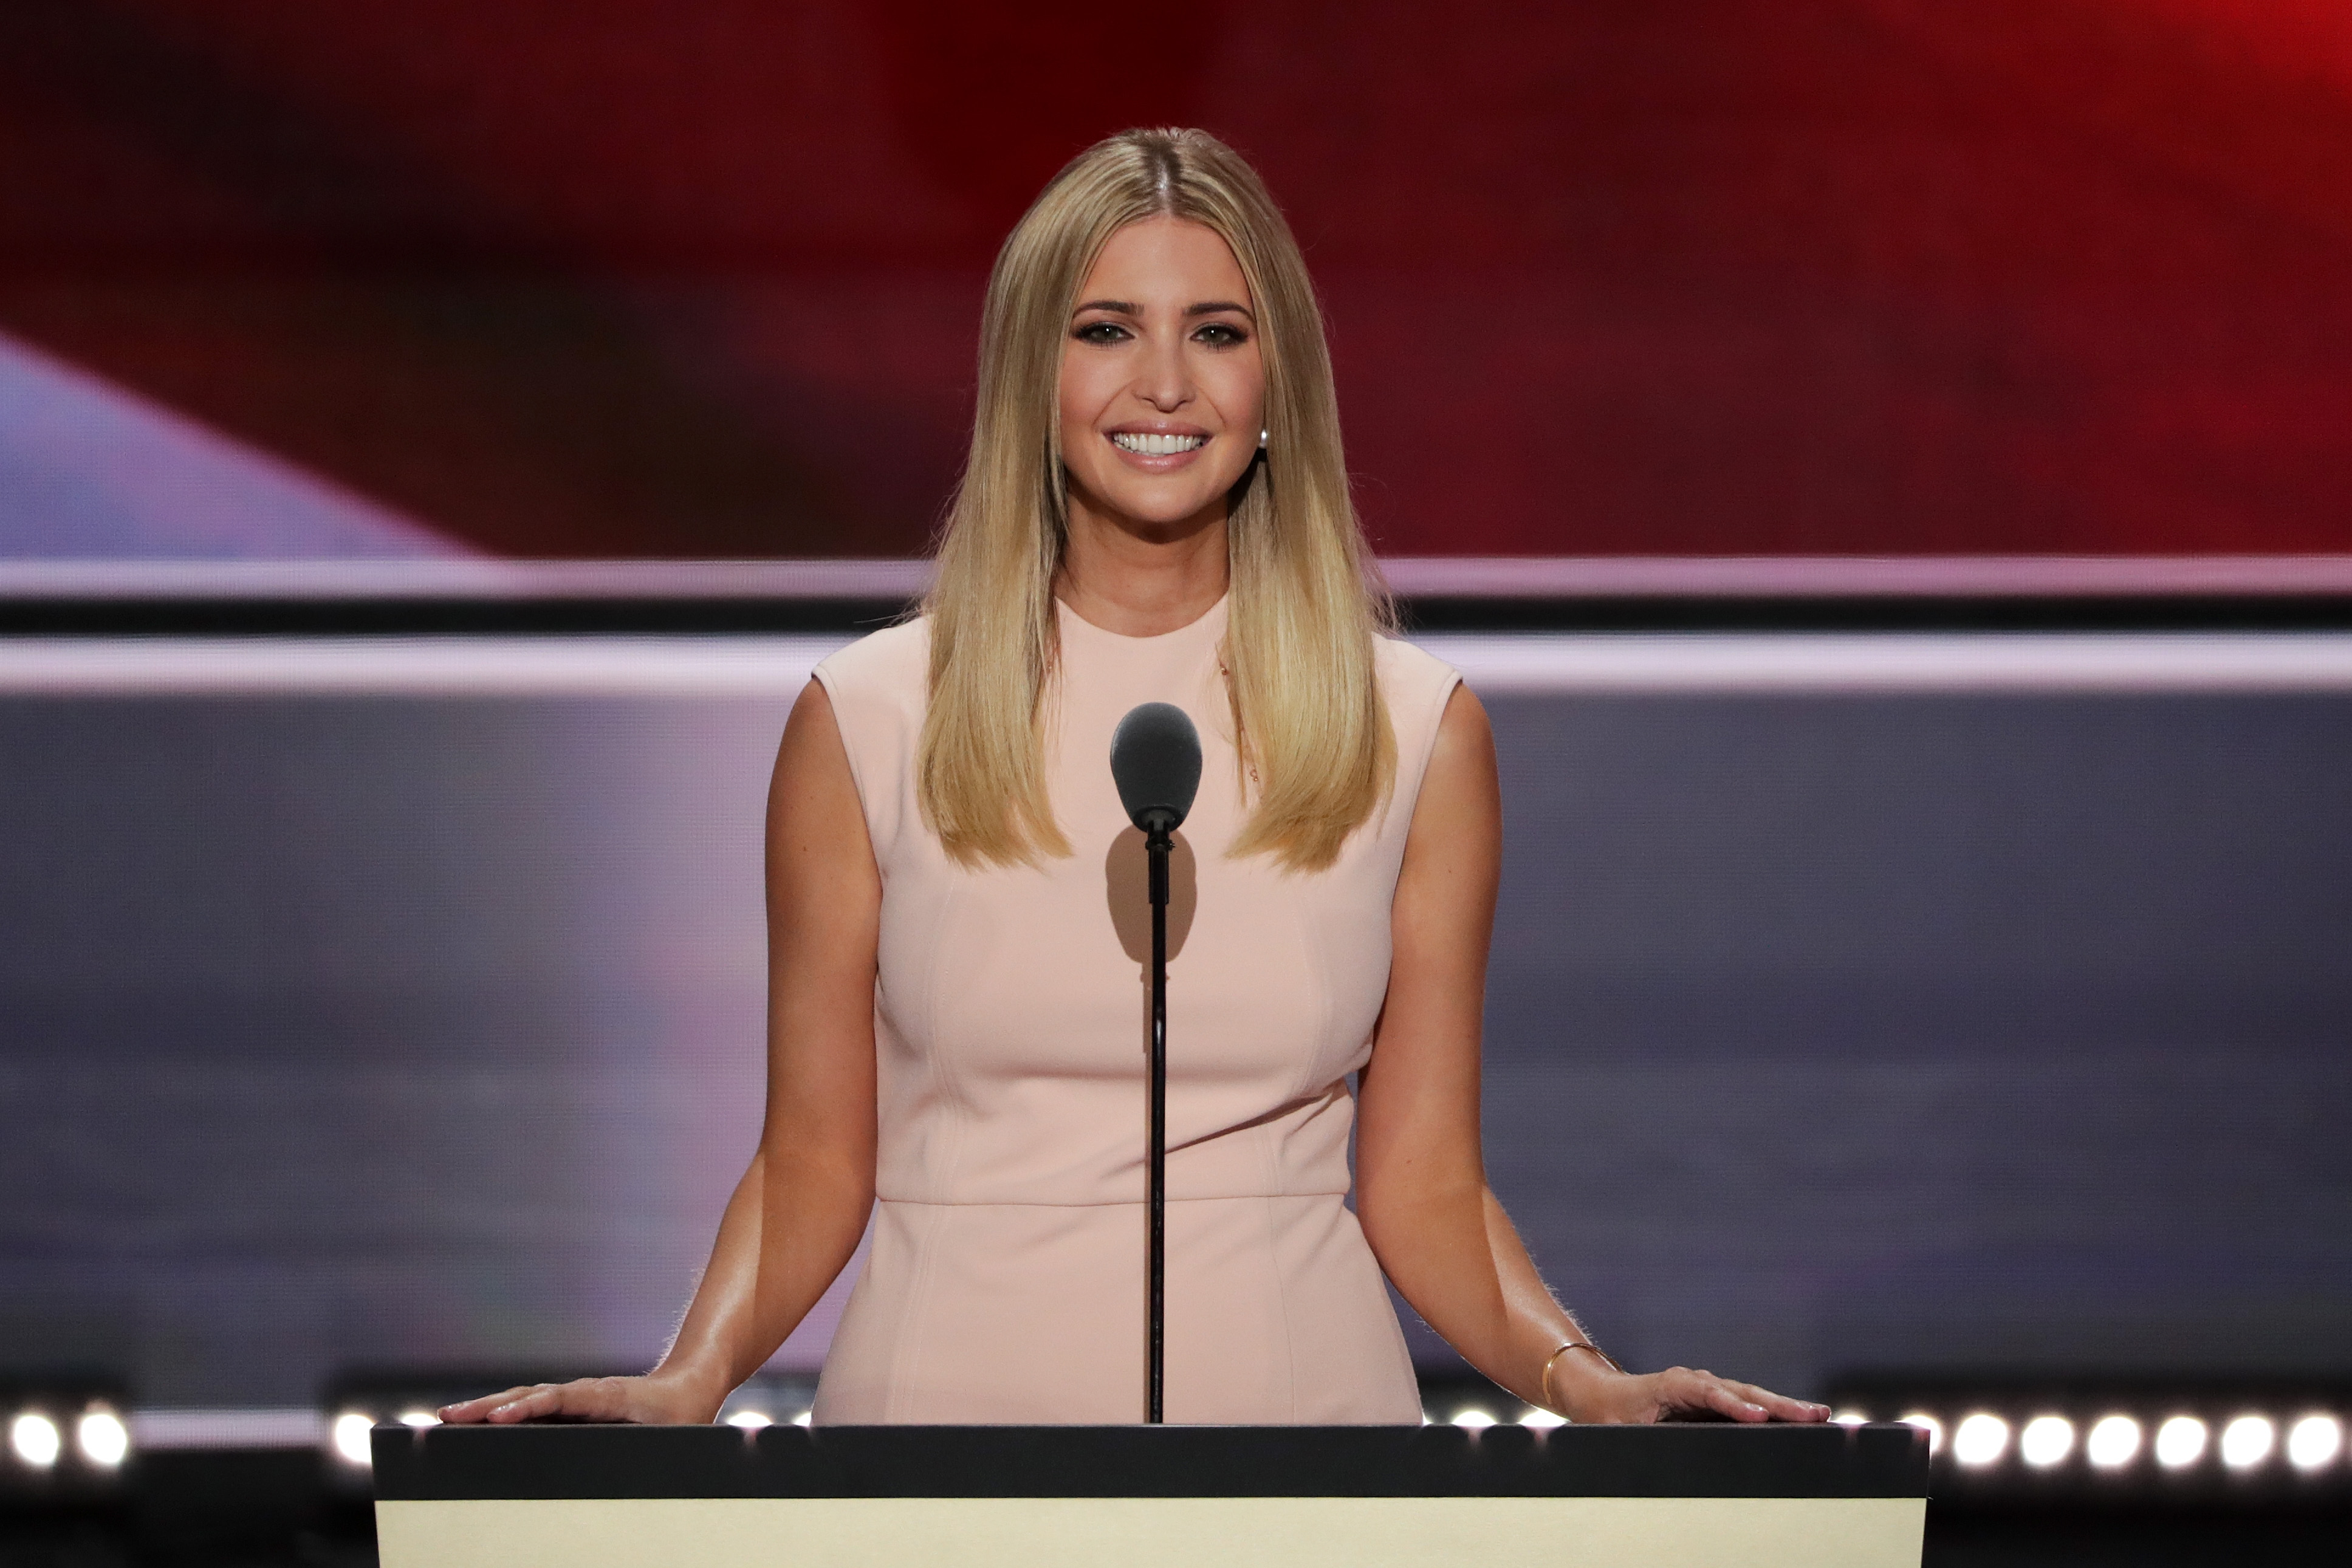 Ivanka Trump delivers a speech during the evening session on the fourth day of the Republican National Convention at the Quicken Loans Arena in Cleveland on July 21, 2016 .